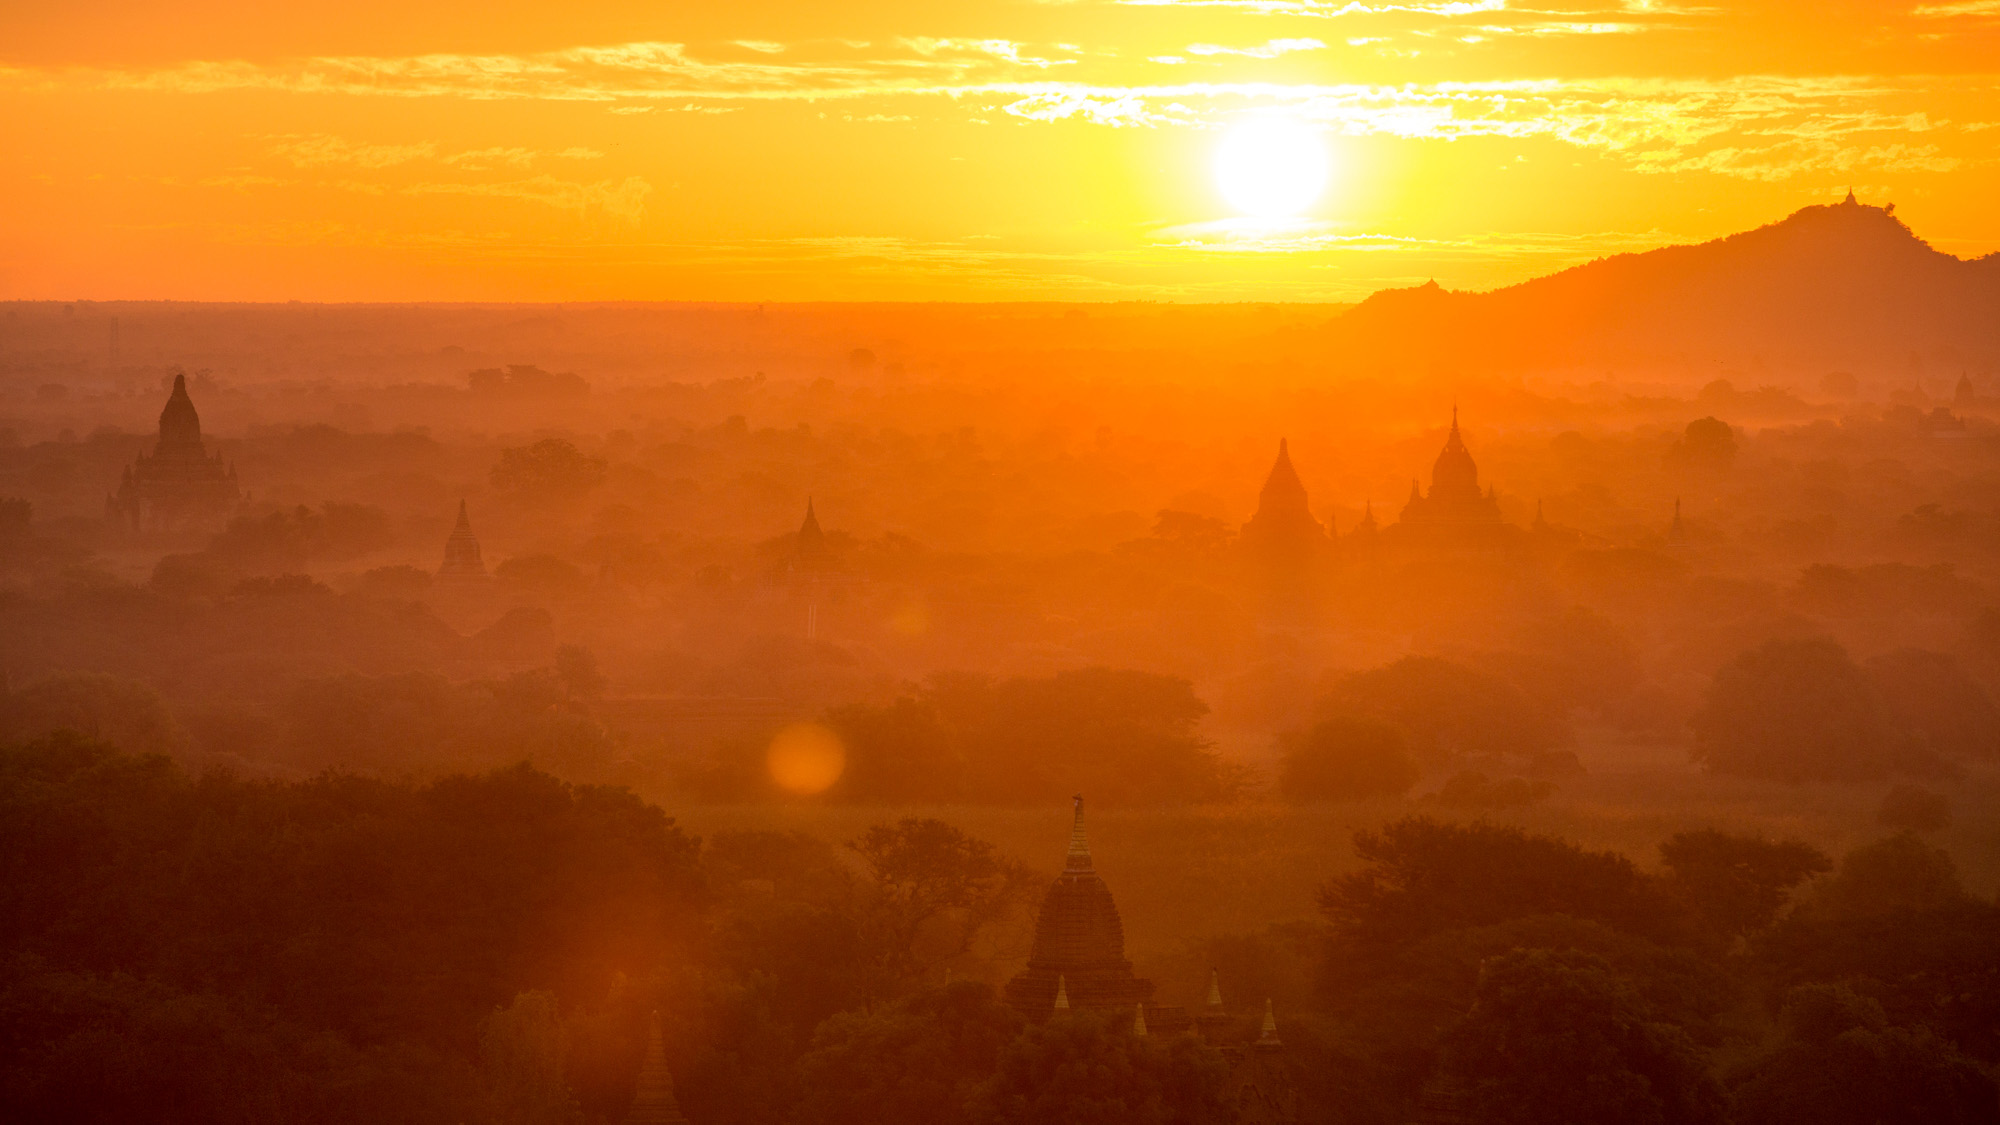 The sunrise from Shwesandaw Pagoda was mesmerising.